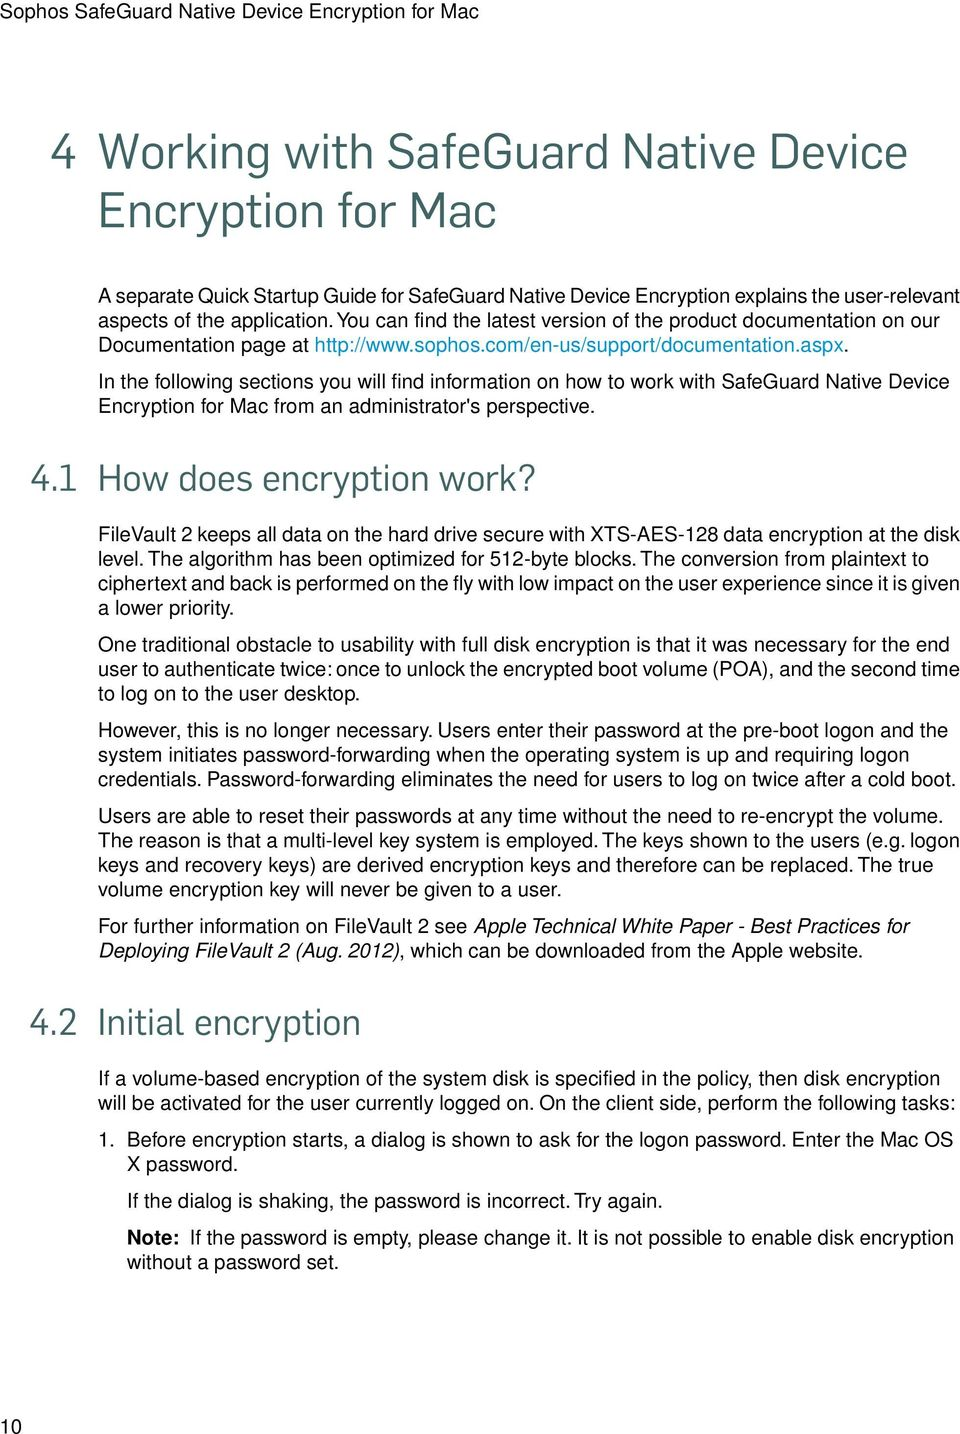 In the following sections you will find information on how to work with SafeGuard Native Device Encryption for Mac from an administrator's perspective. 4.1 How does encryption work?